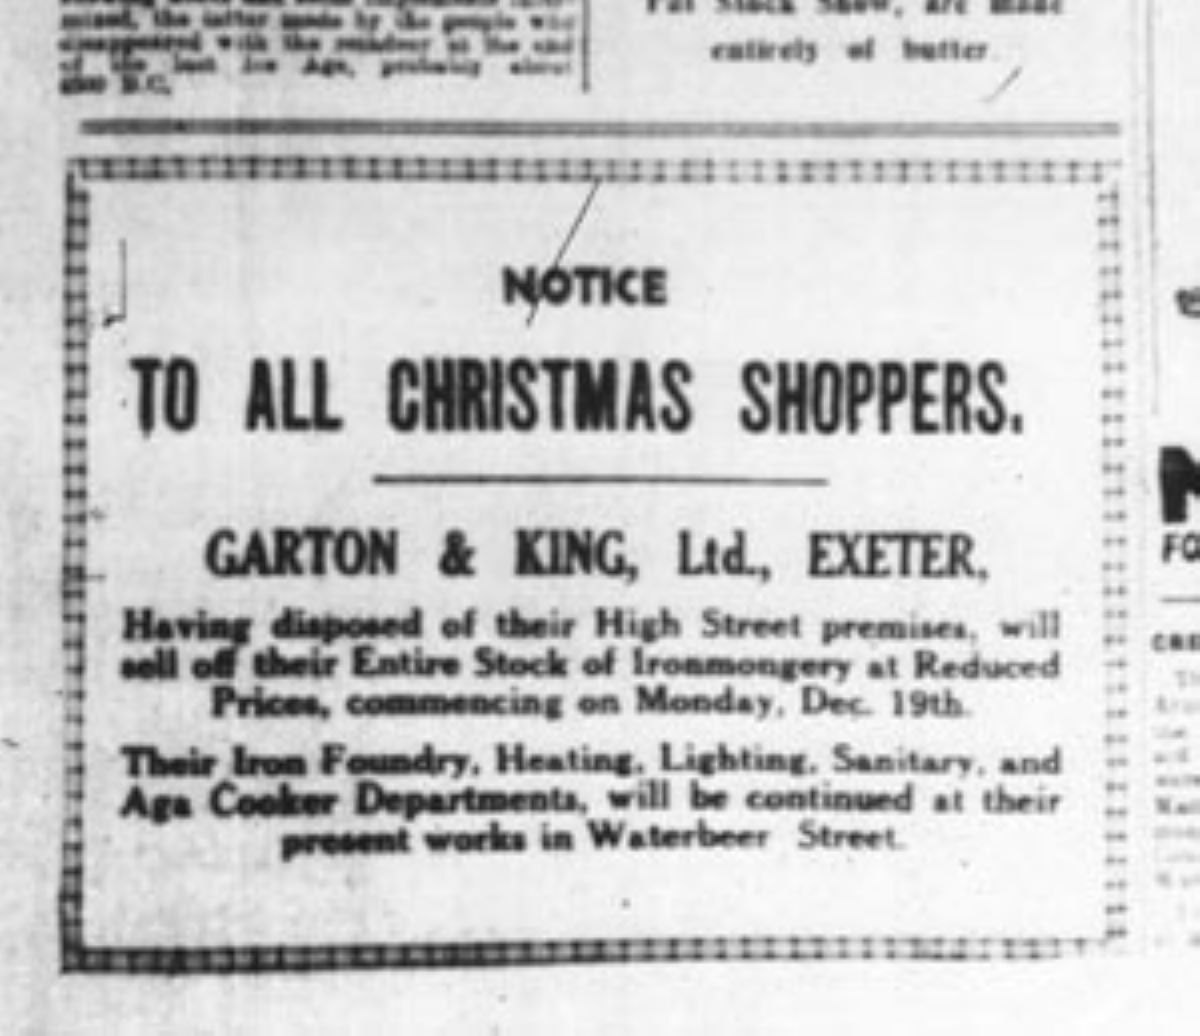 Christmas shoppers notice 1932